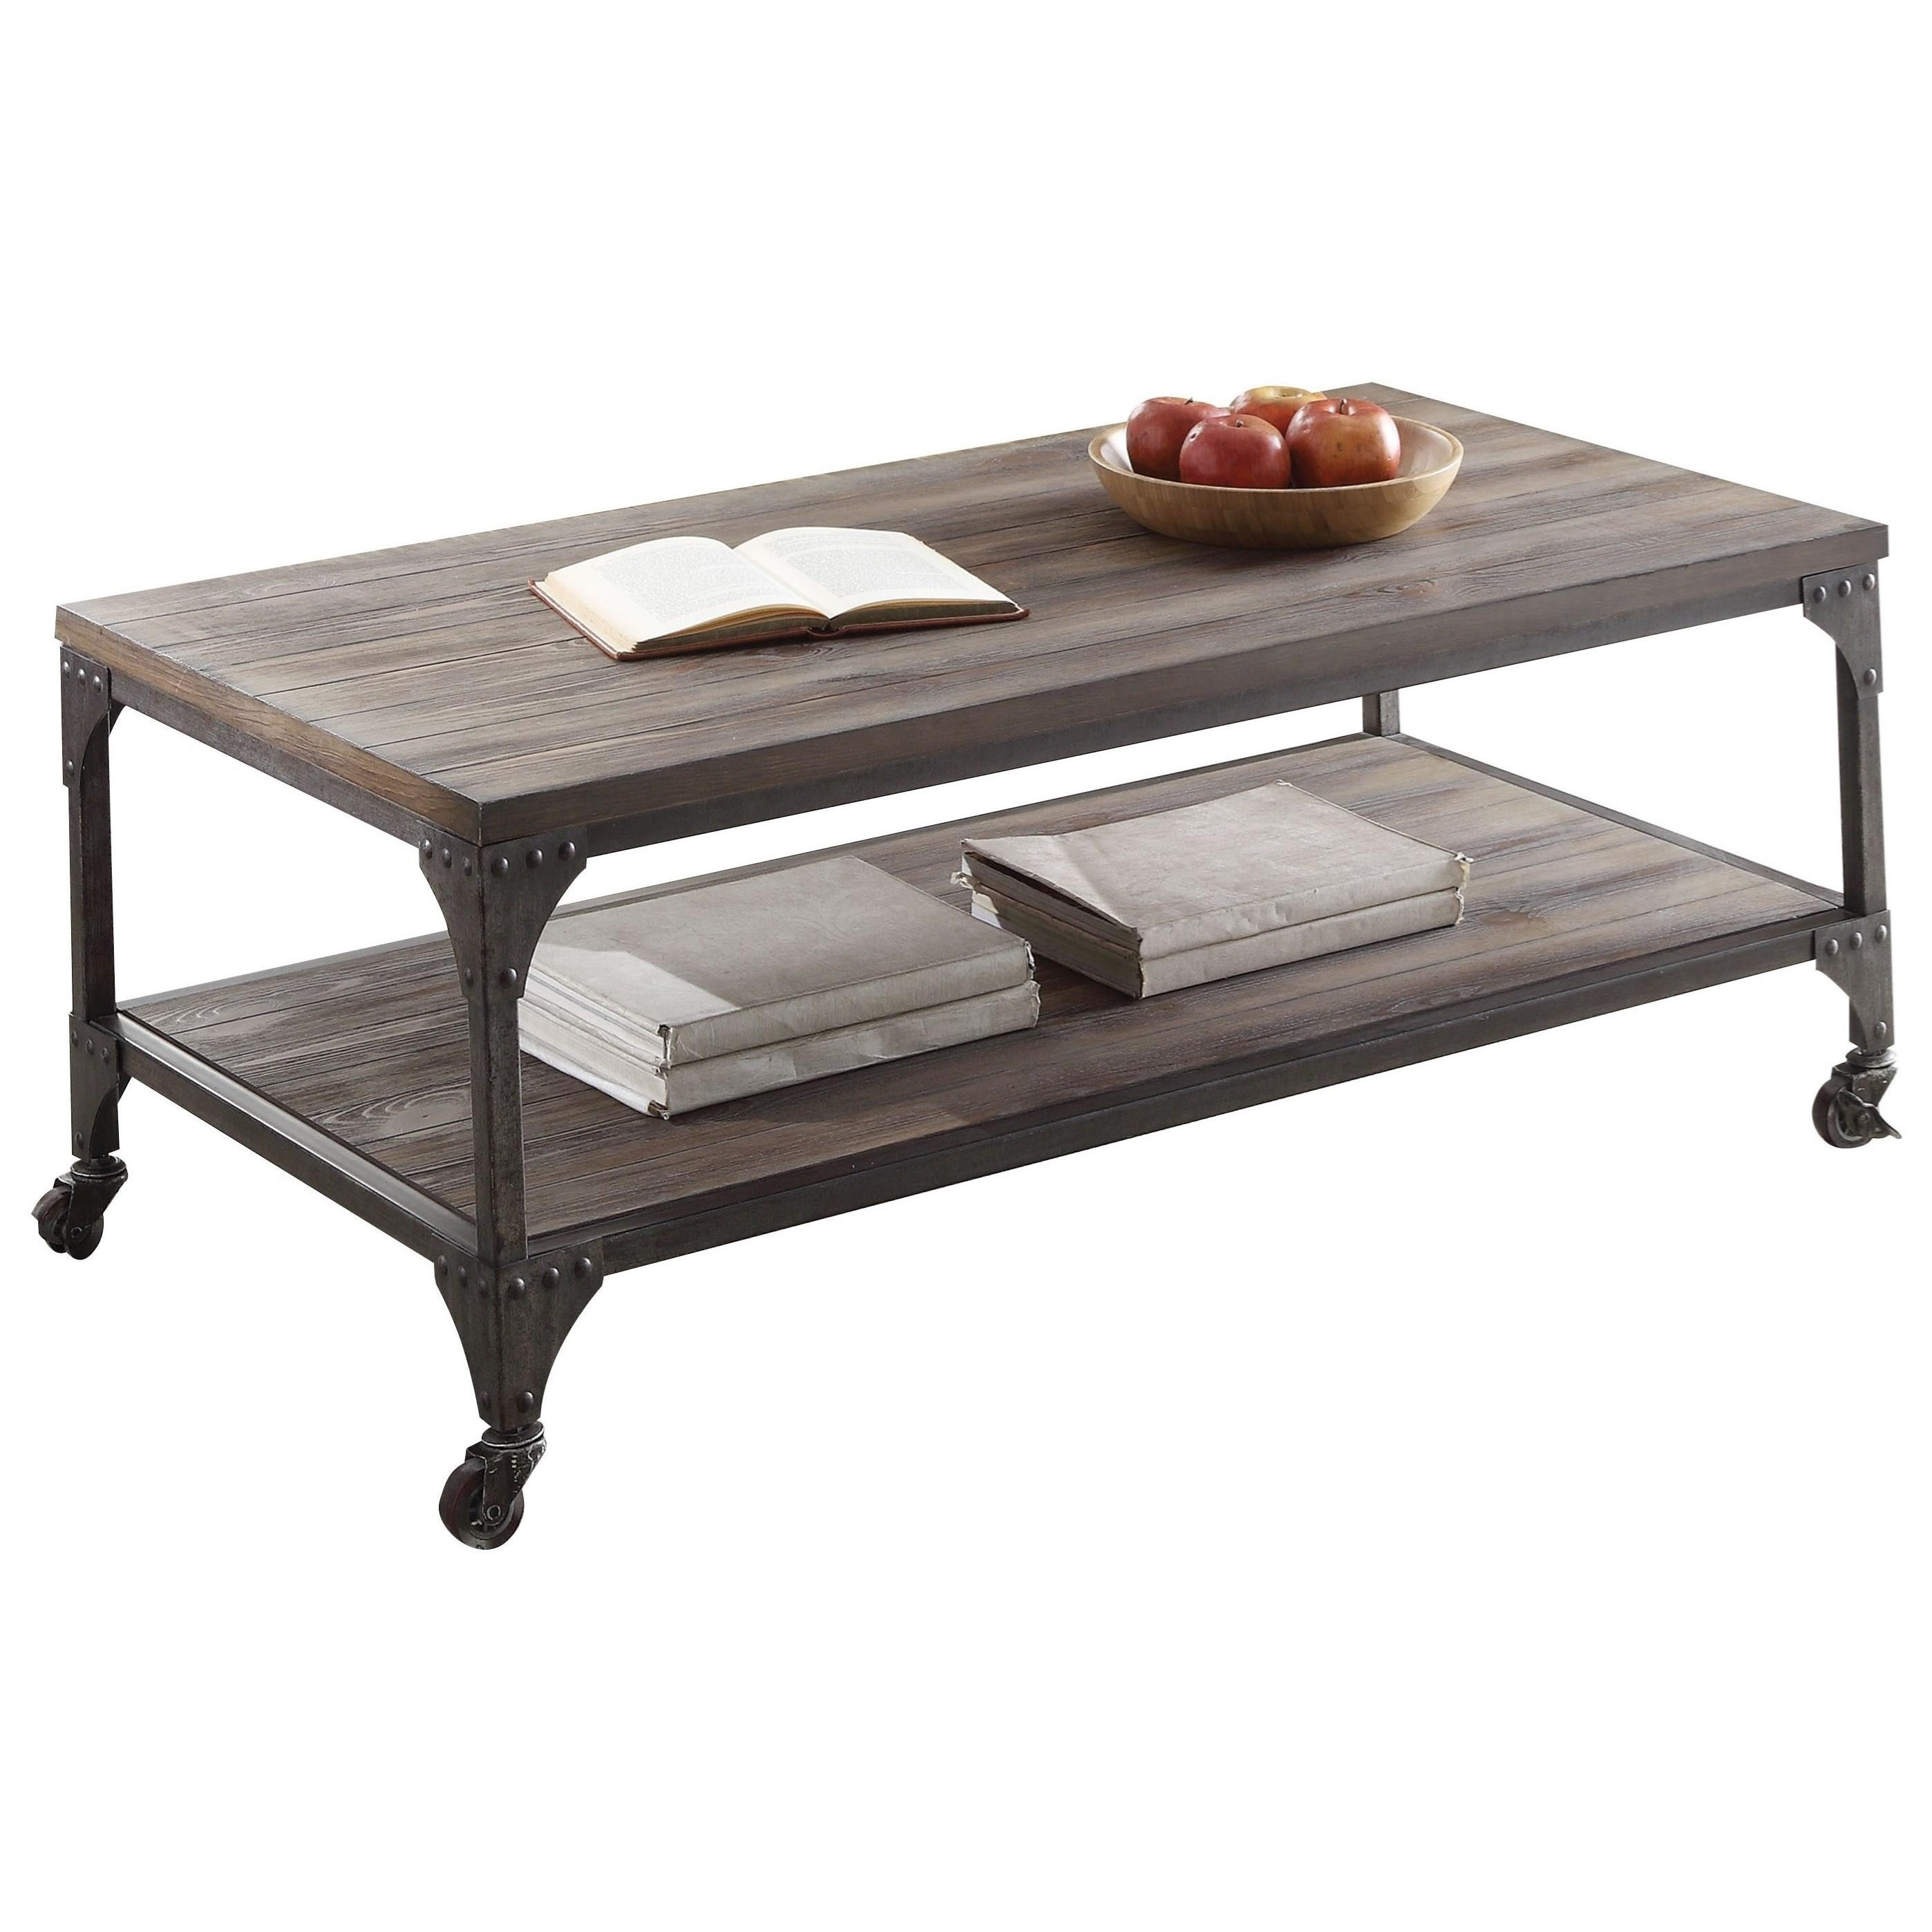 Gorden Coffee Table by Acme Furniture at Carolina Direct